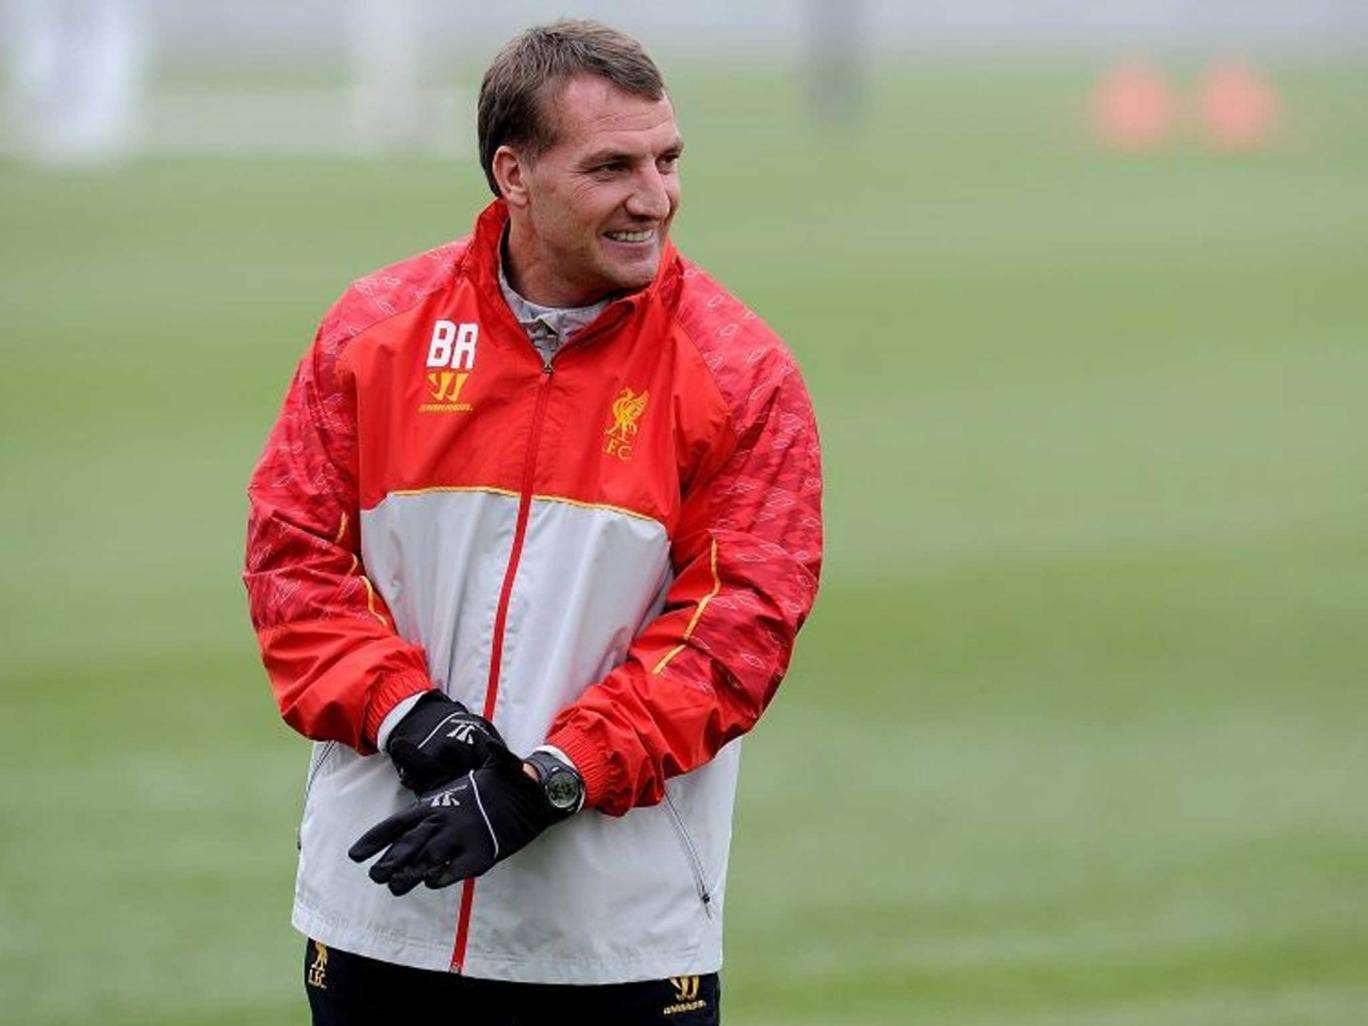 Brendan Rodgers during a training session at Melwood Training Ground